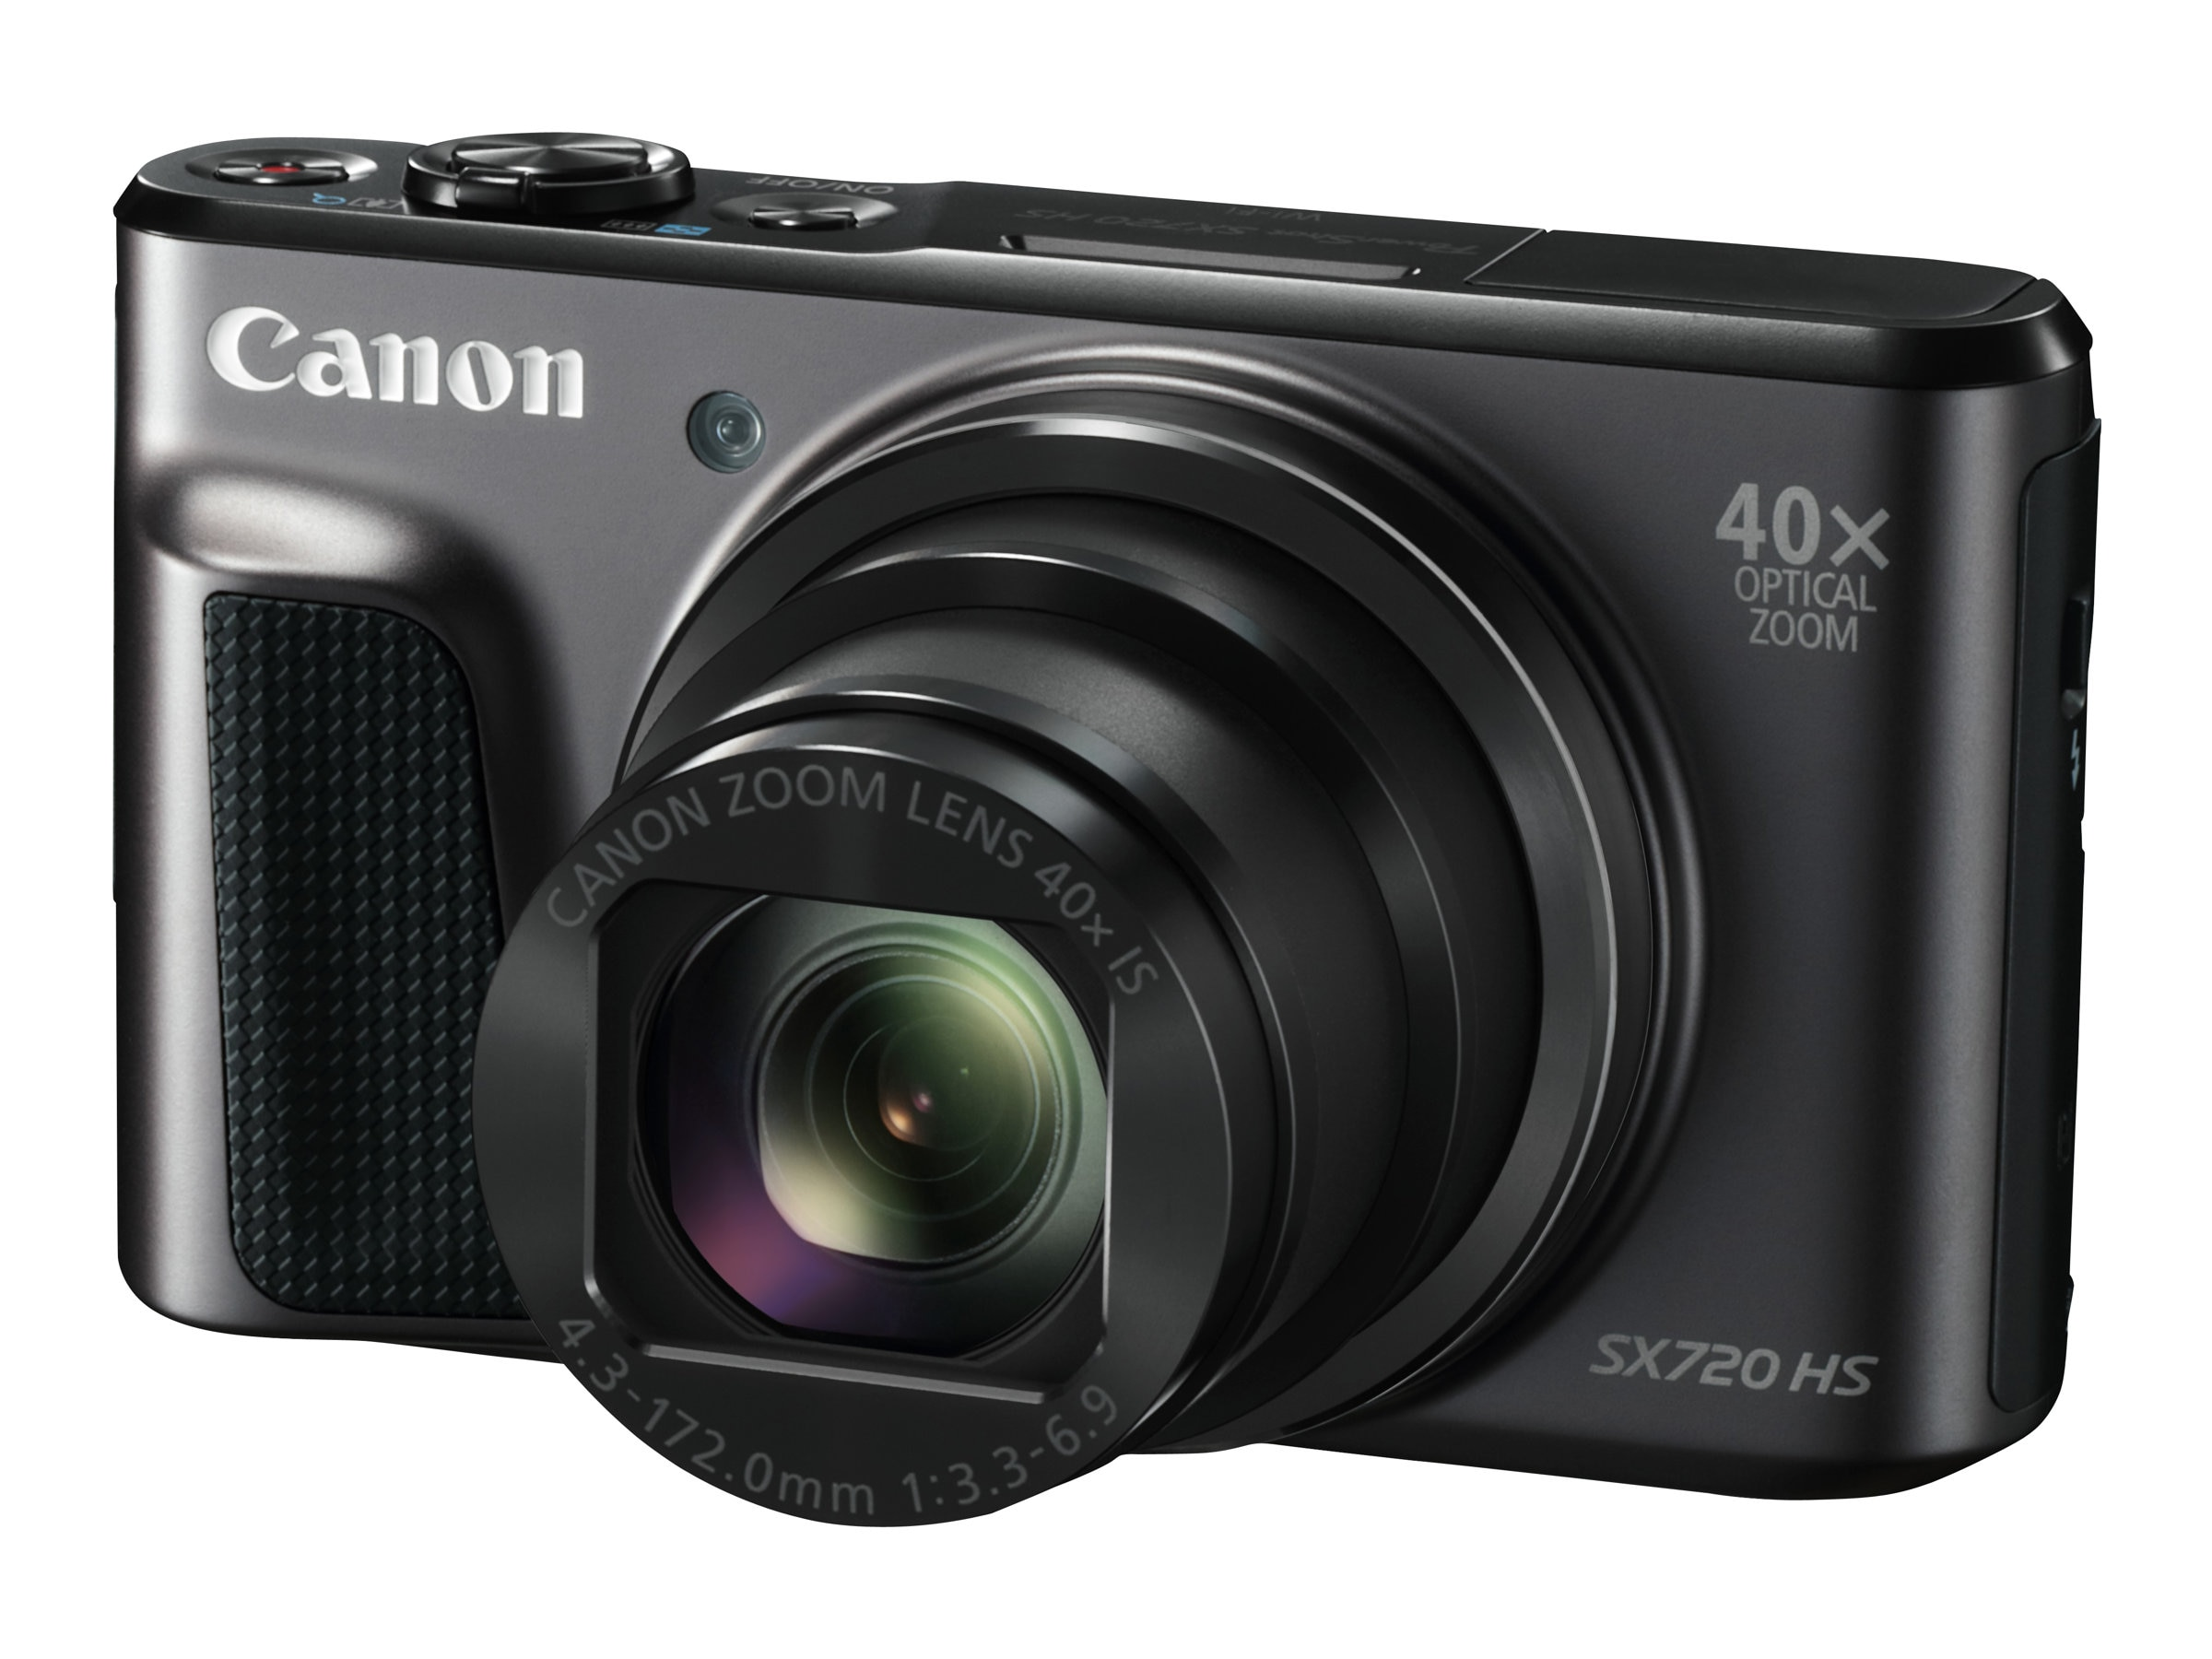 Canon PowerShot SX720 HS Digital Camera, Black